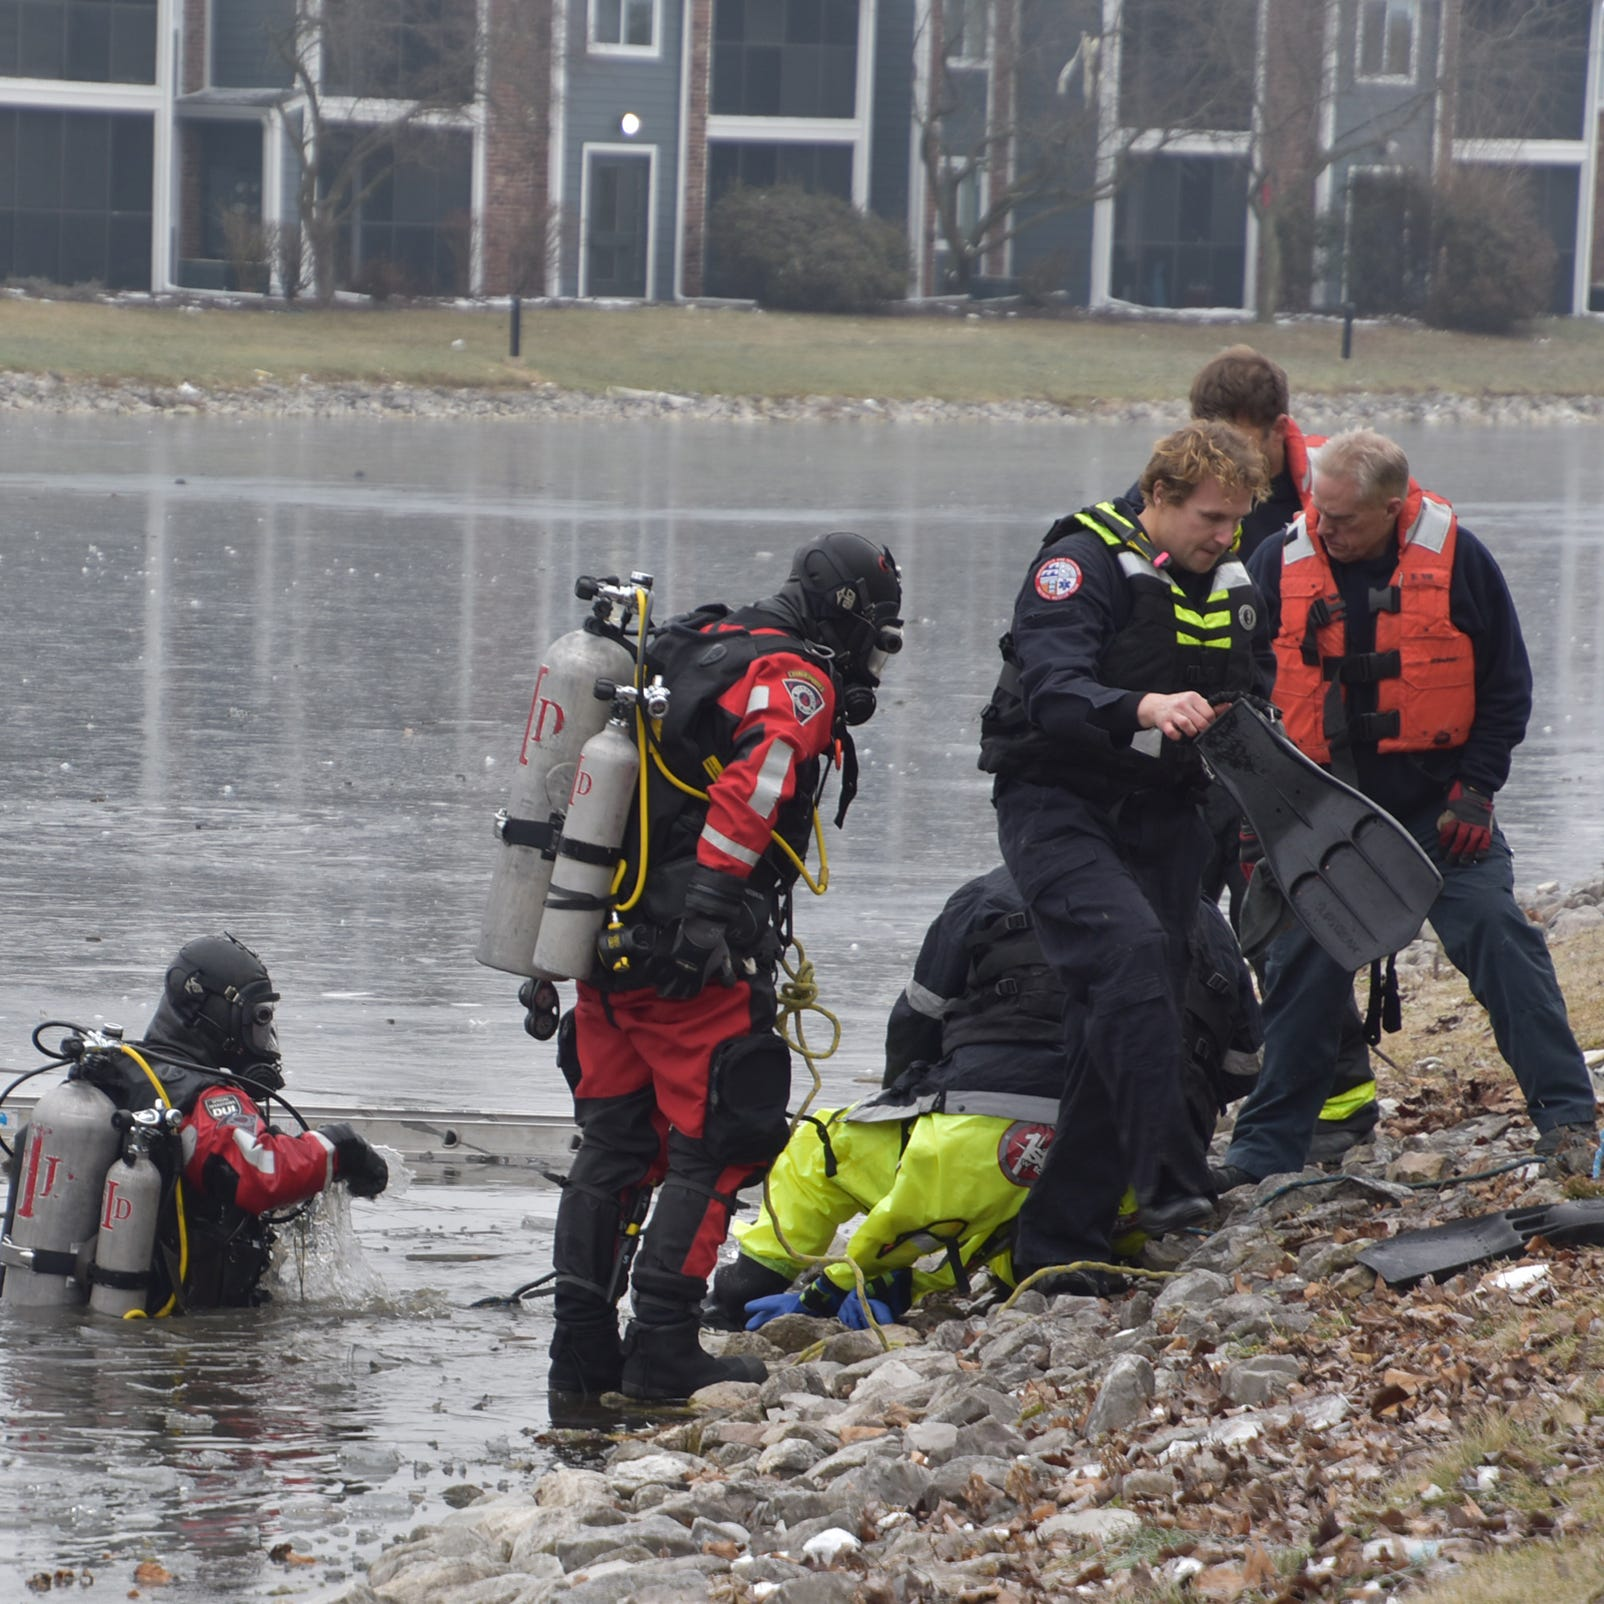 Man dies after trying to rescue dog from icy pond, fire officials say